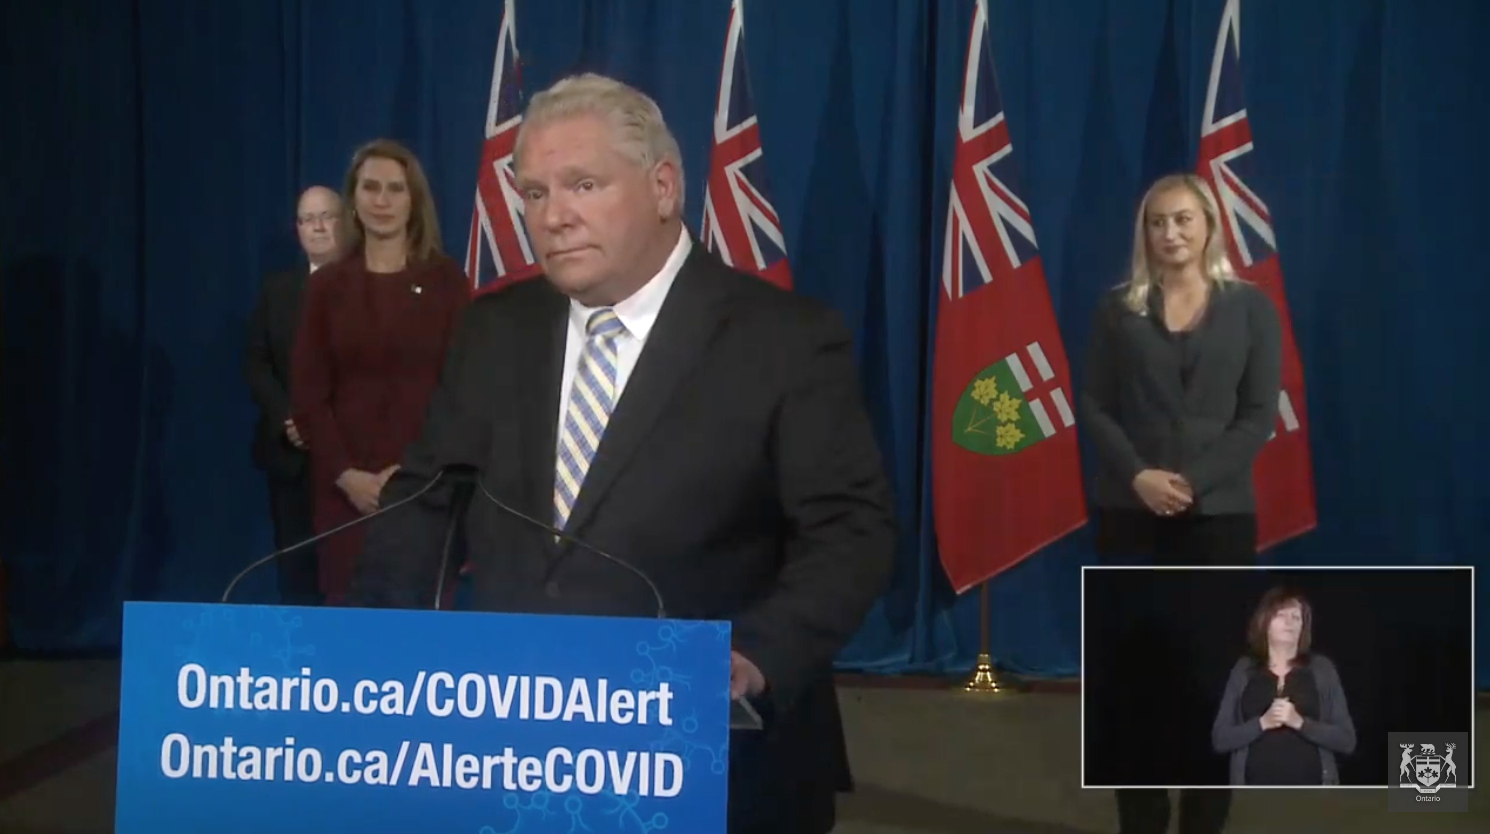 'I've just had it with these insurance companies': Your Ontario COVID-19 roundup